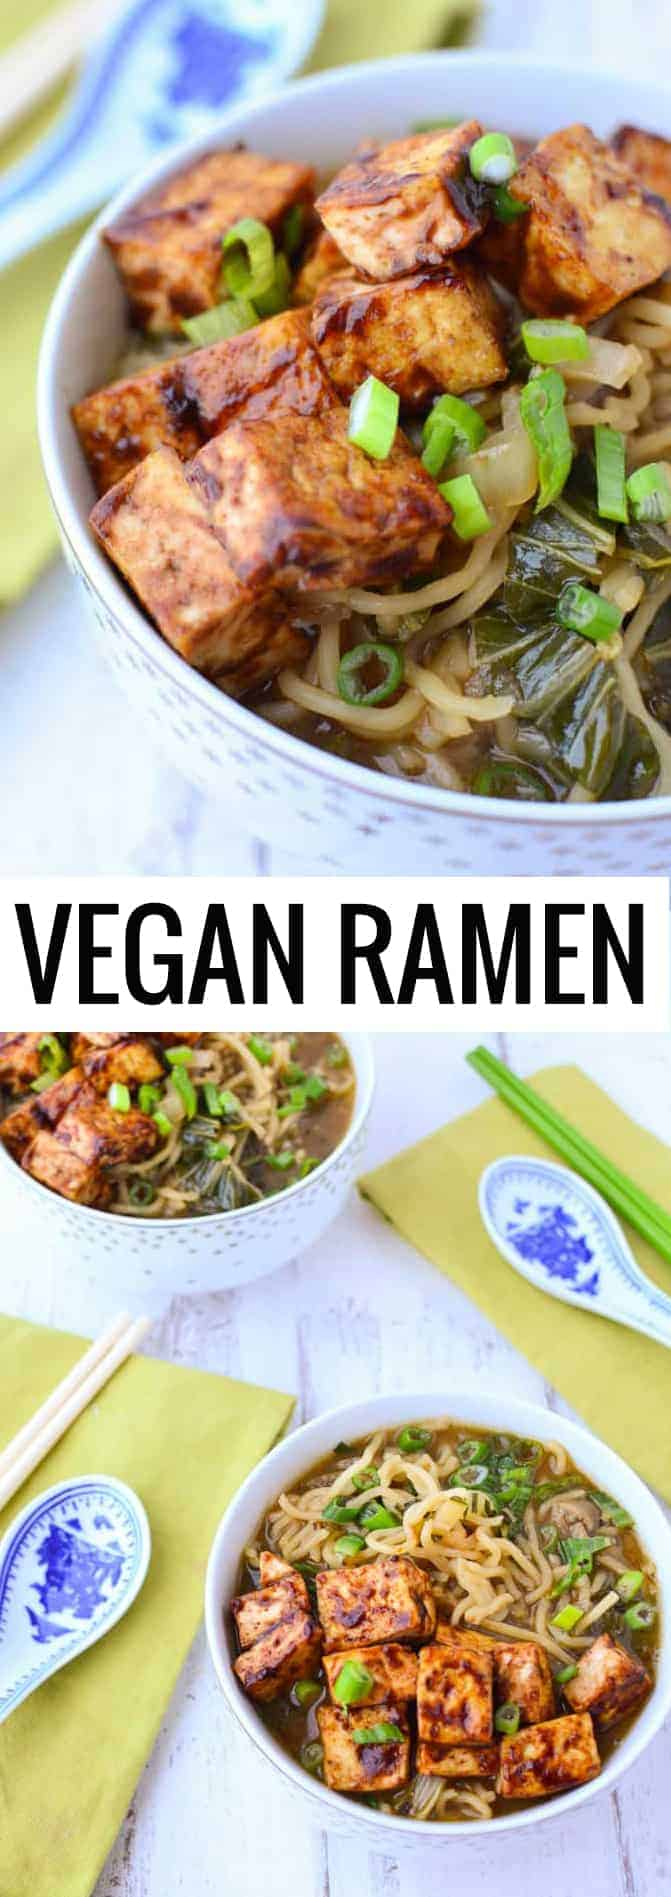 Vegan Ramen Soup! Flavorful miso broth with hoisin tofu and fresh ramen noodles. | www.delishknowledge.com #vegan #ramen #soup #tofu #healthy #vegetarian #dinner #healthyrecipes #plantbased